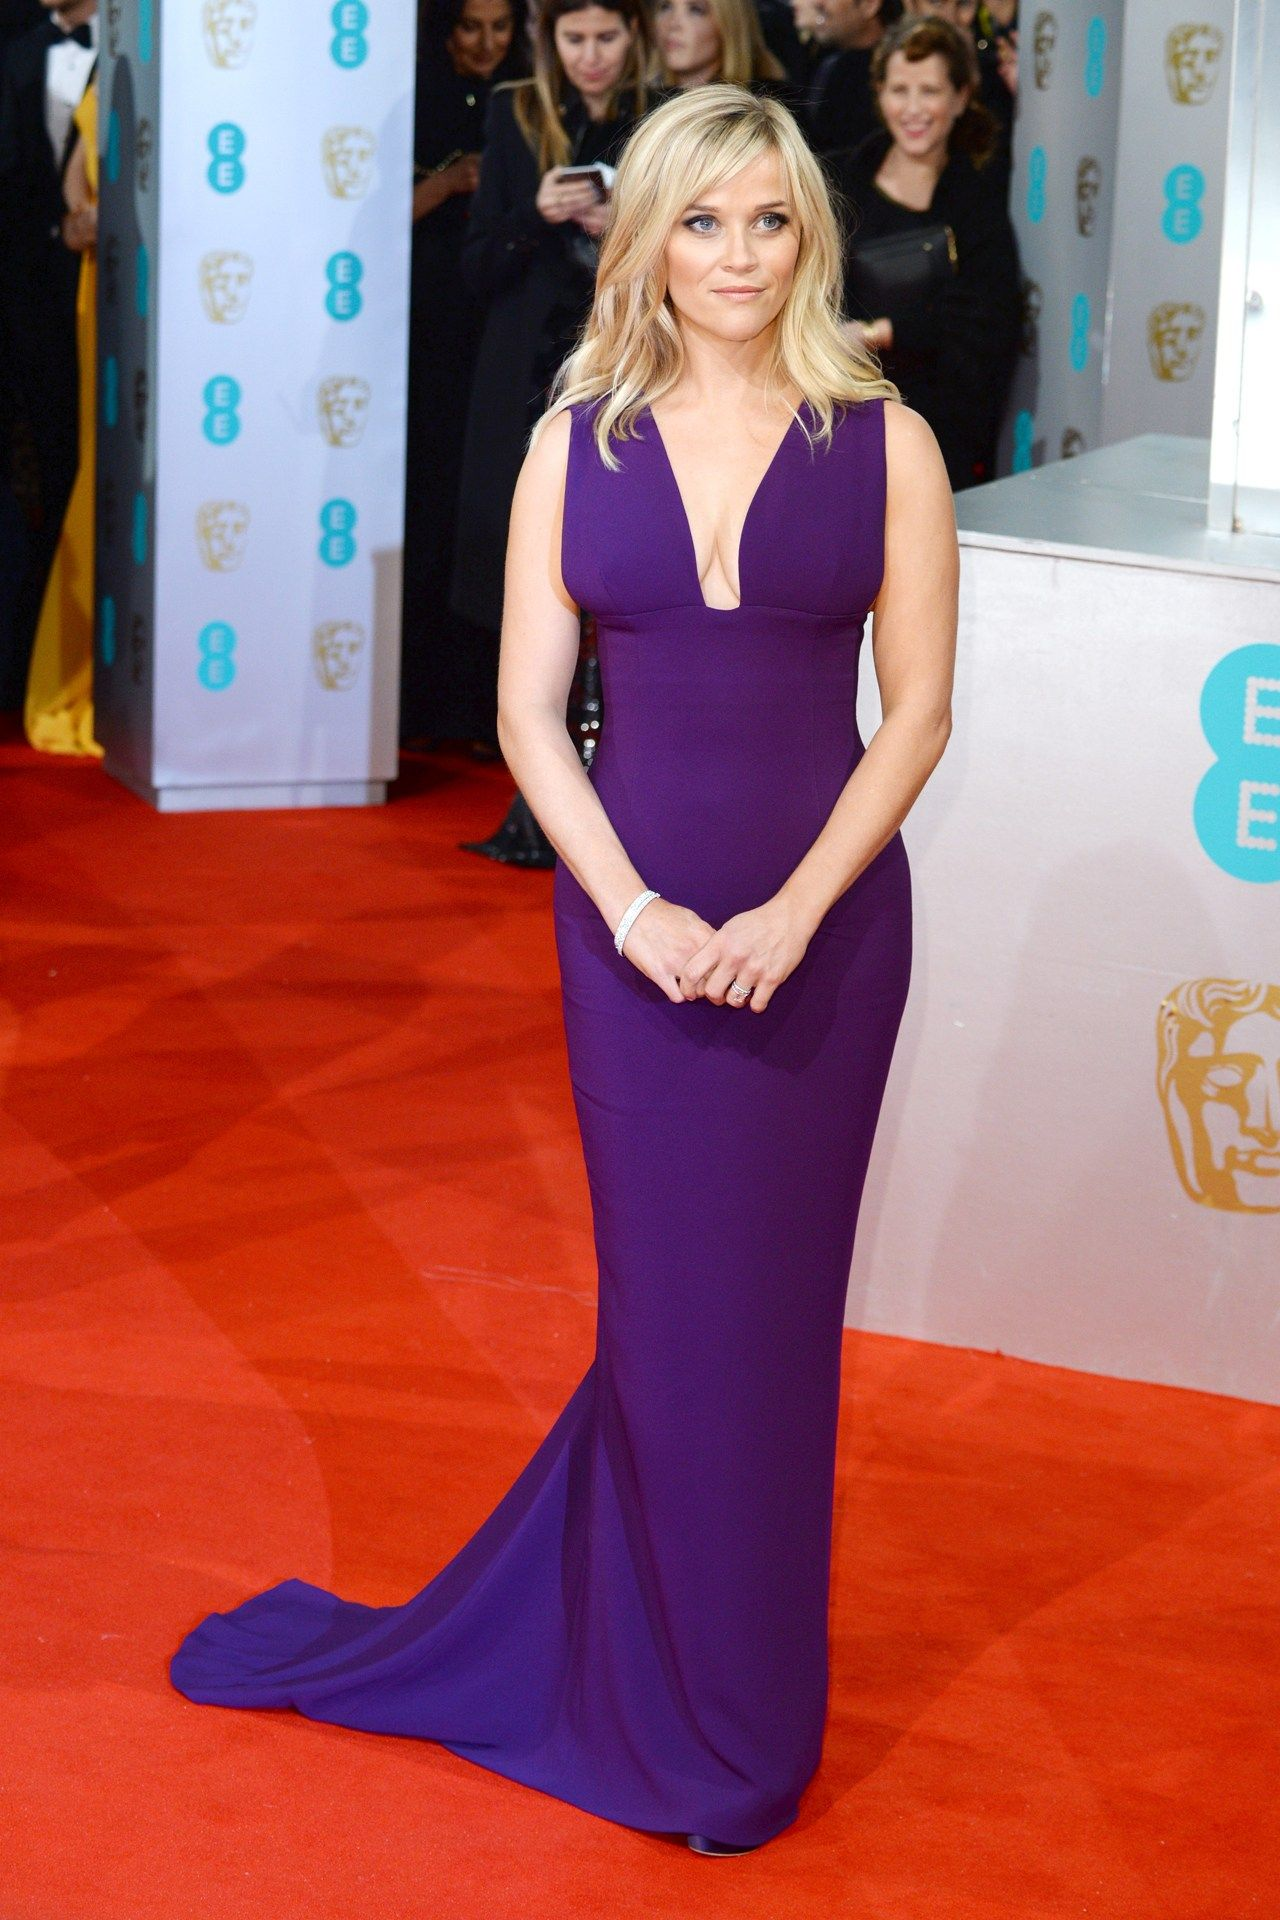 Reese Witherspoon in Bafta 2015